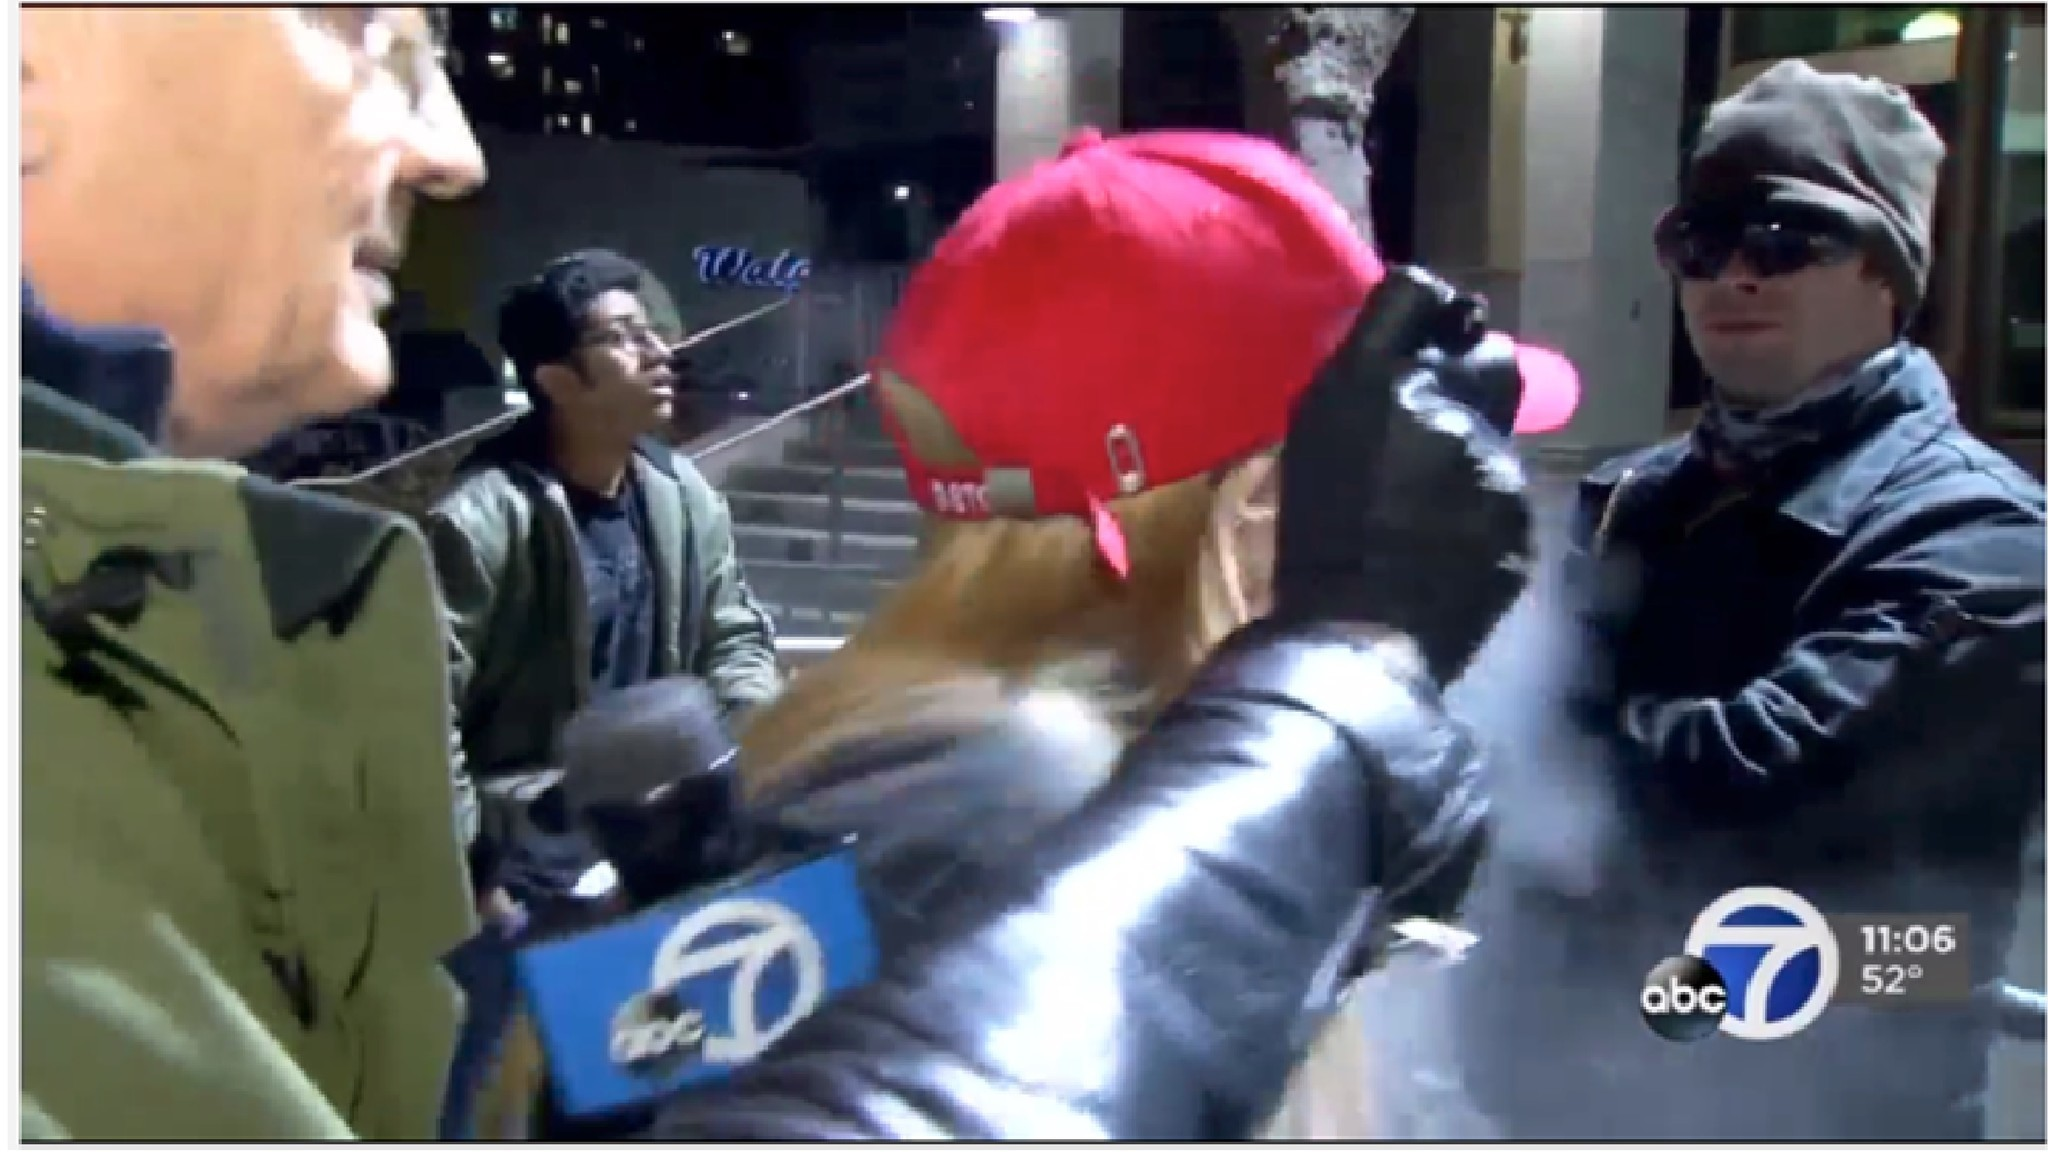 Kiara Robles is attacked with pepper spray during a news interview.